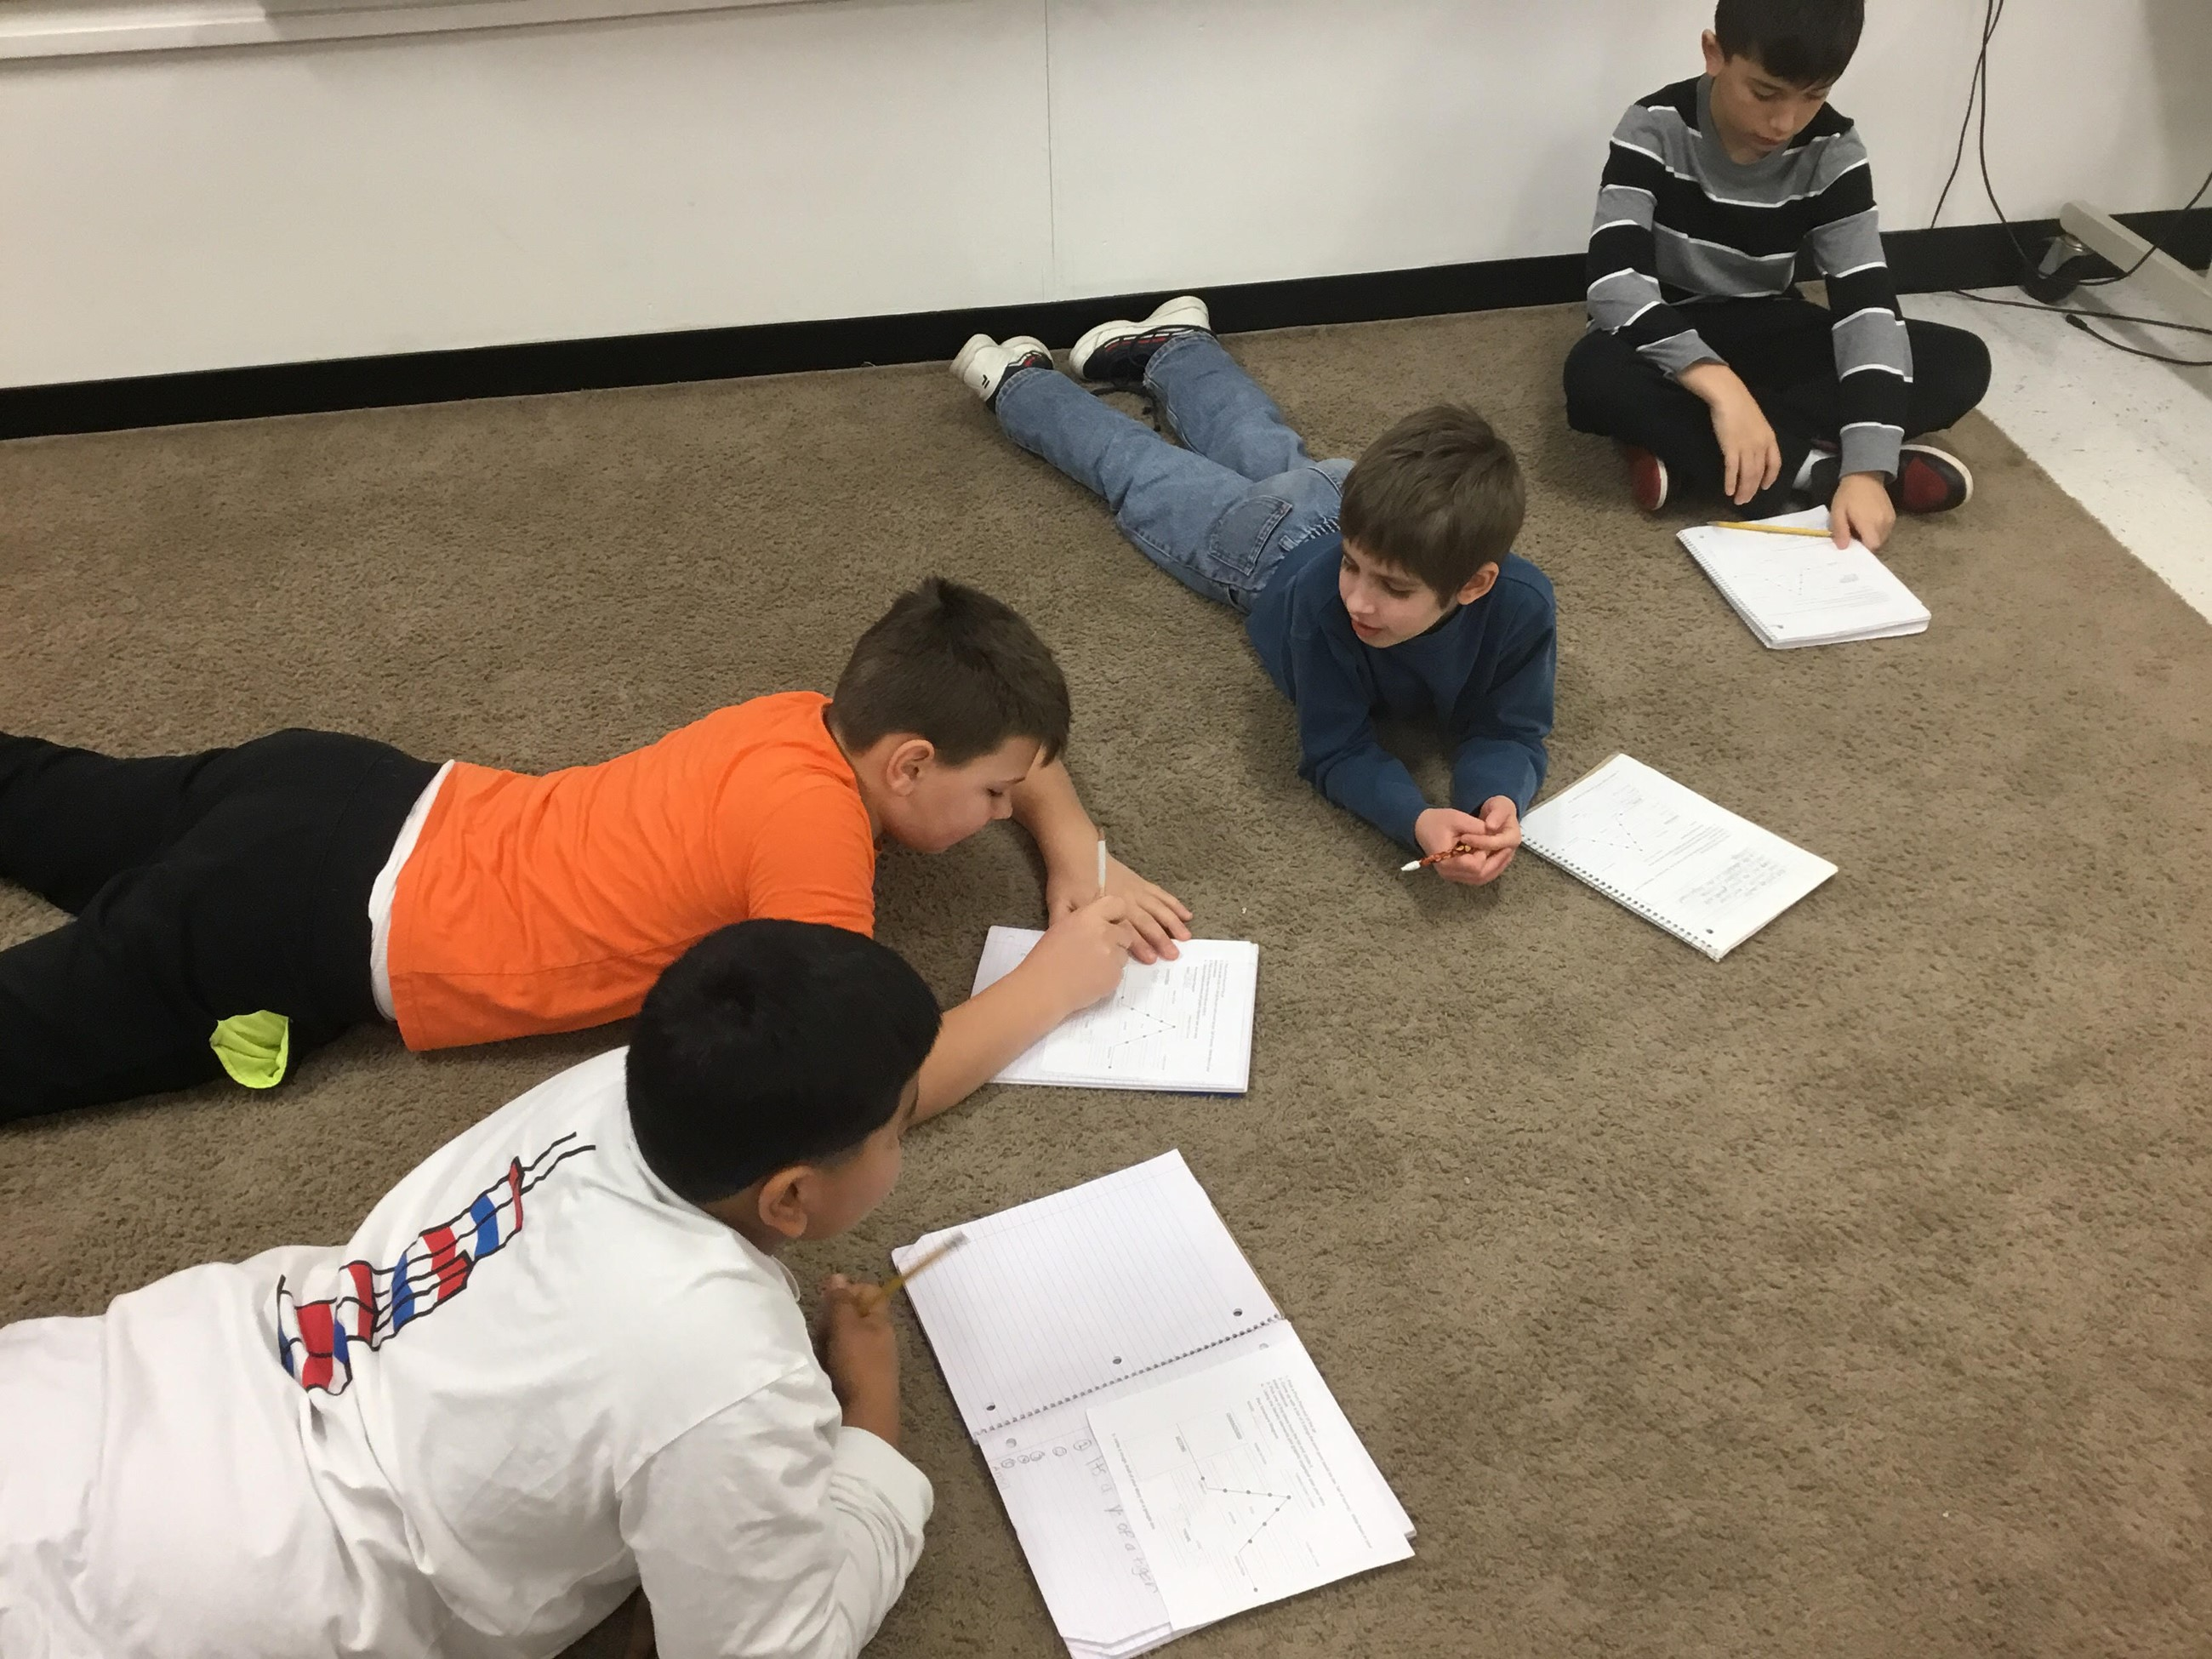 Mrs. Brusso's 4th grade class writing on the carpet area in their notebooks.